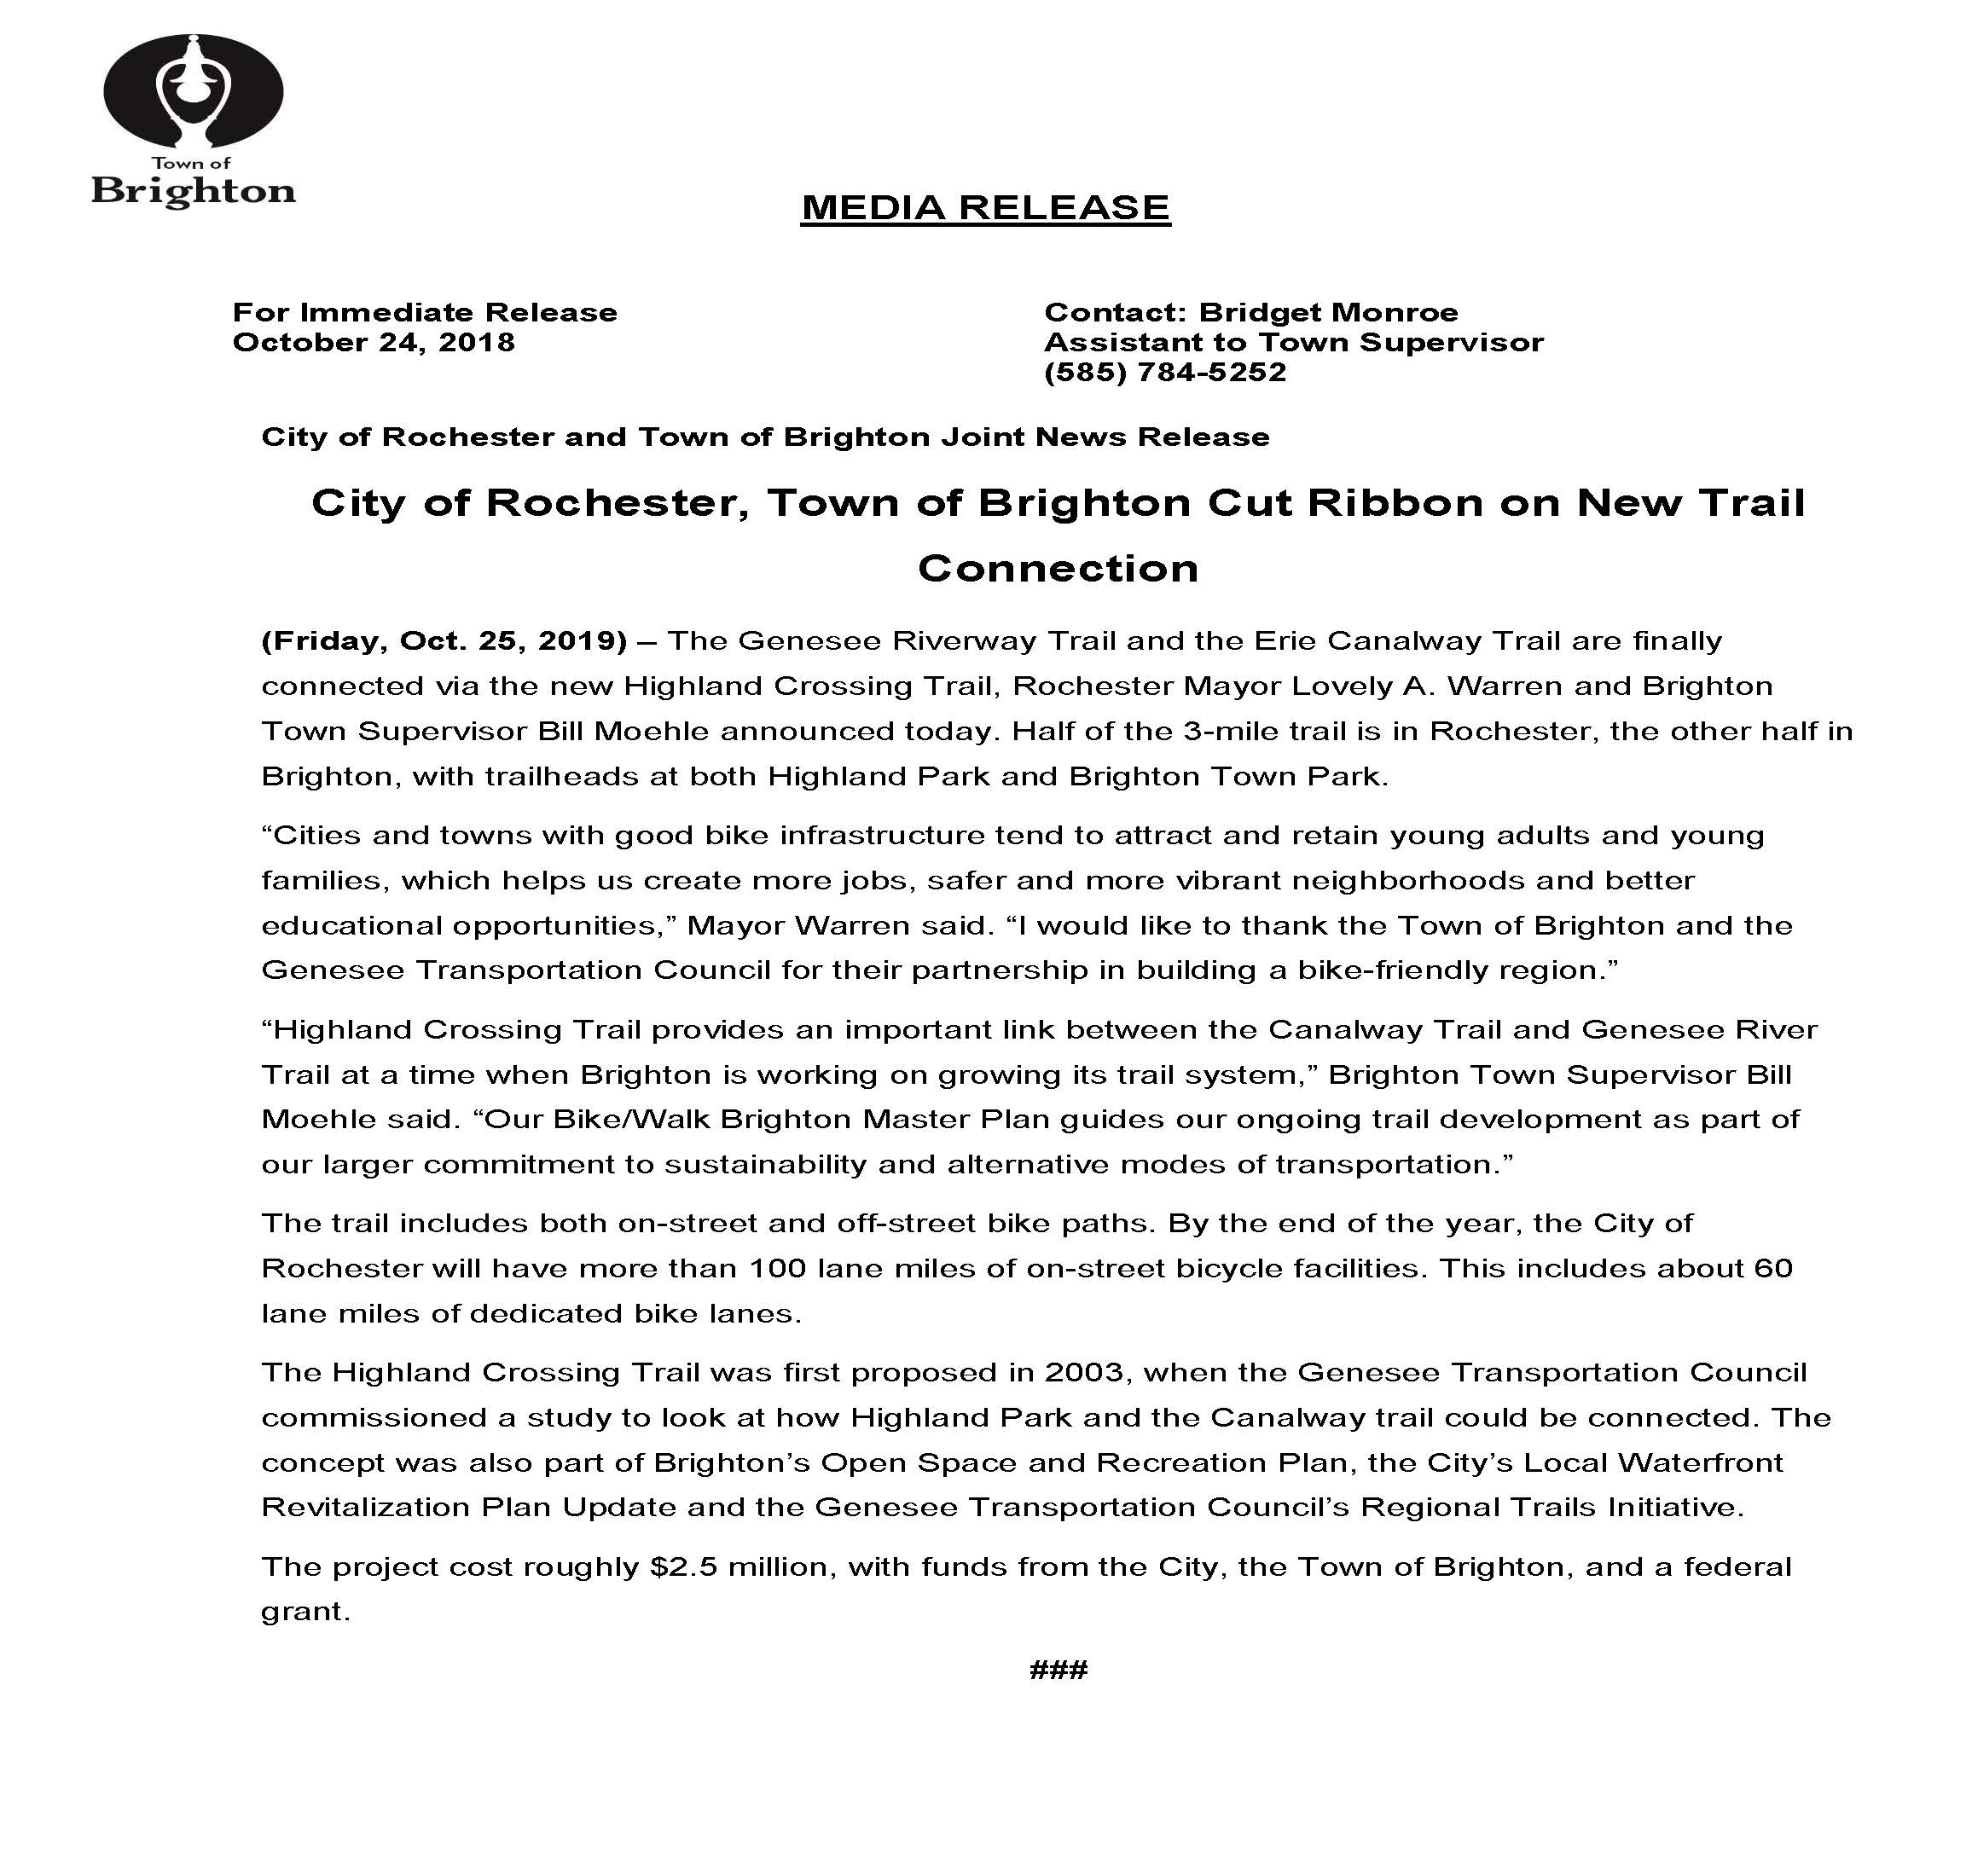 Highland Crossing Trail press release